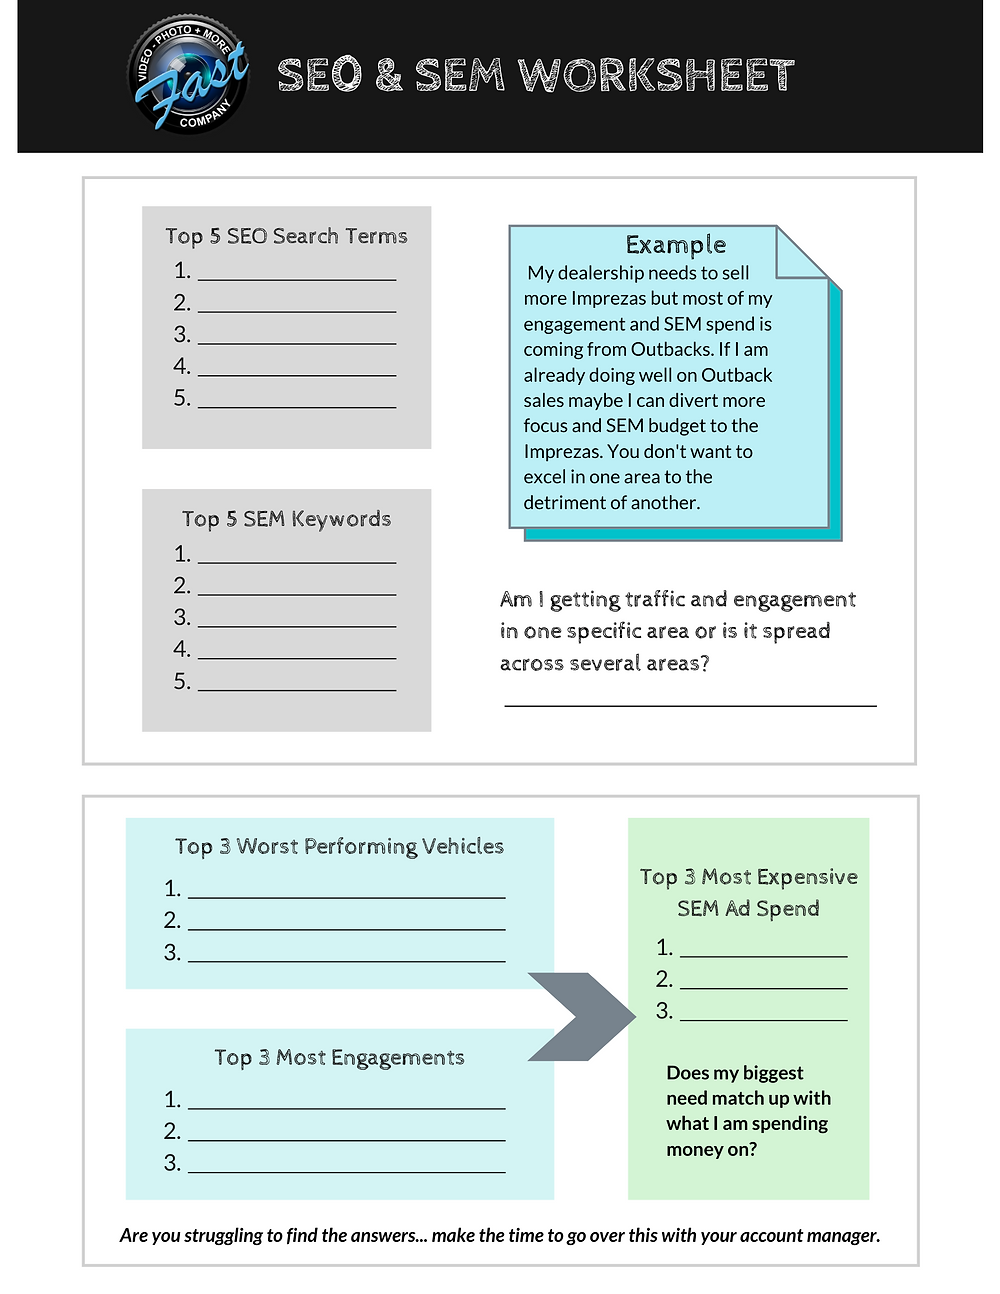 SEO and SEM Worksheet